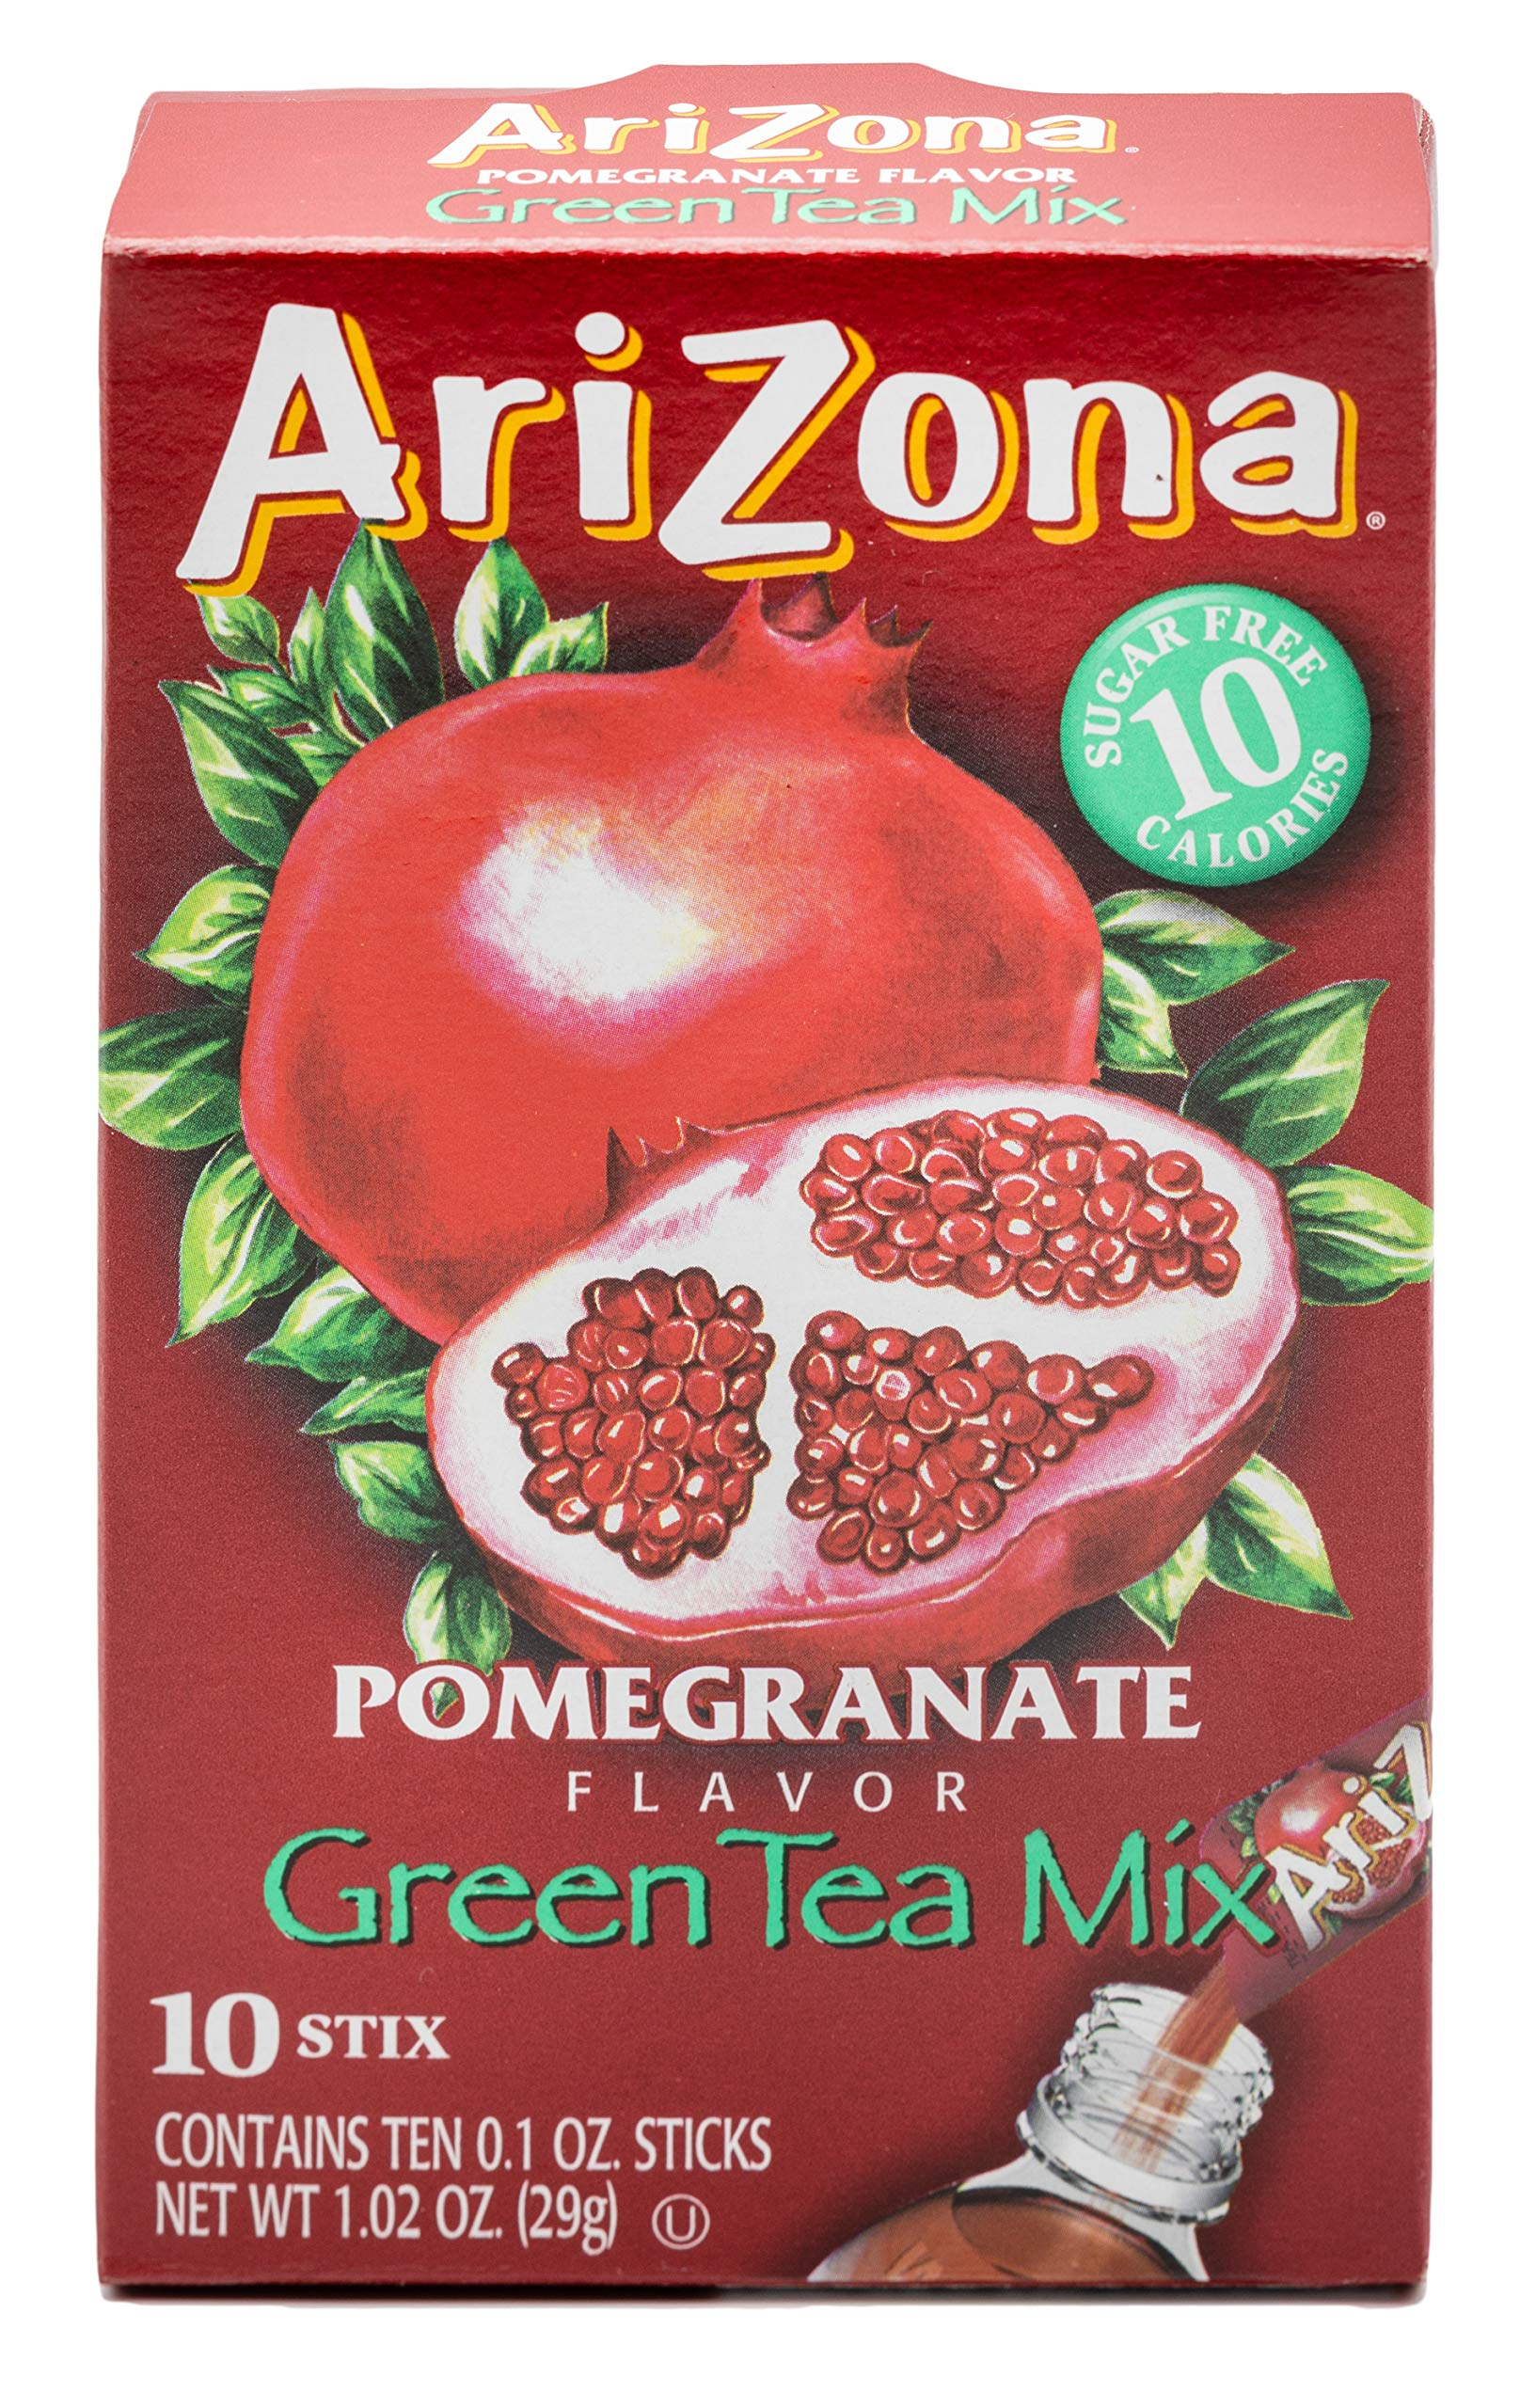 Arizona Green Tea Pomegranate Iced Tea Stix Sugar-Free, 10 Count Per Box (Pack of 12), Low Calorie Single Serving Drink Powder Packets, Just Add Water for a Refreshing Iced Tea